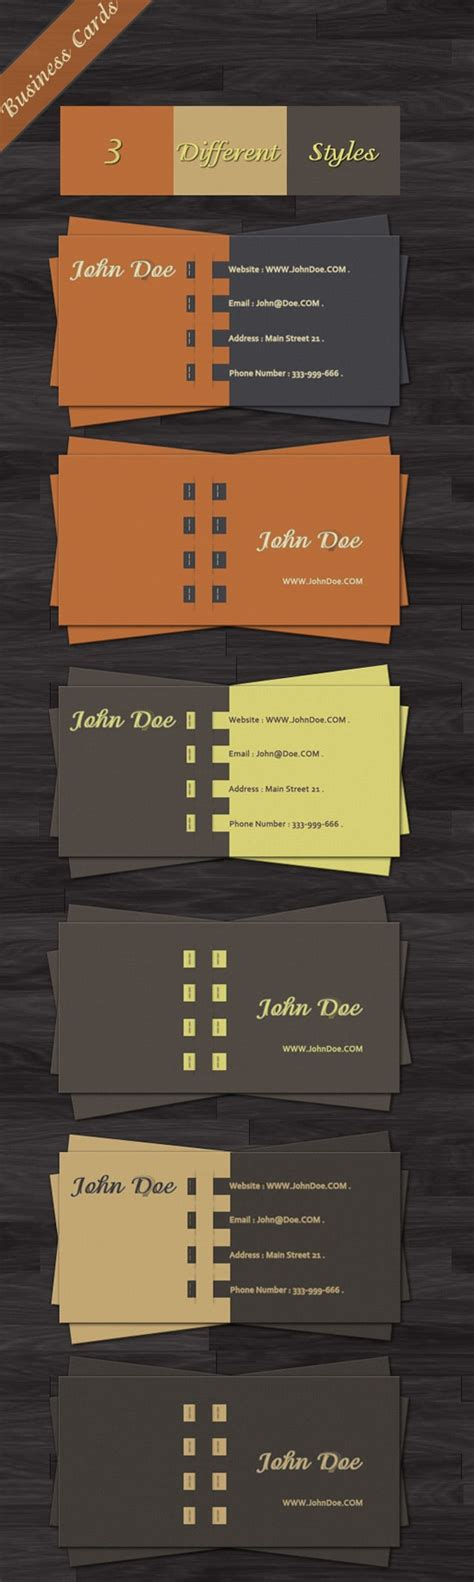 inkscape template business card 100 free business card templates designrfix